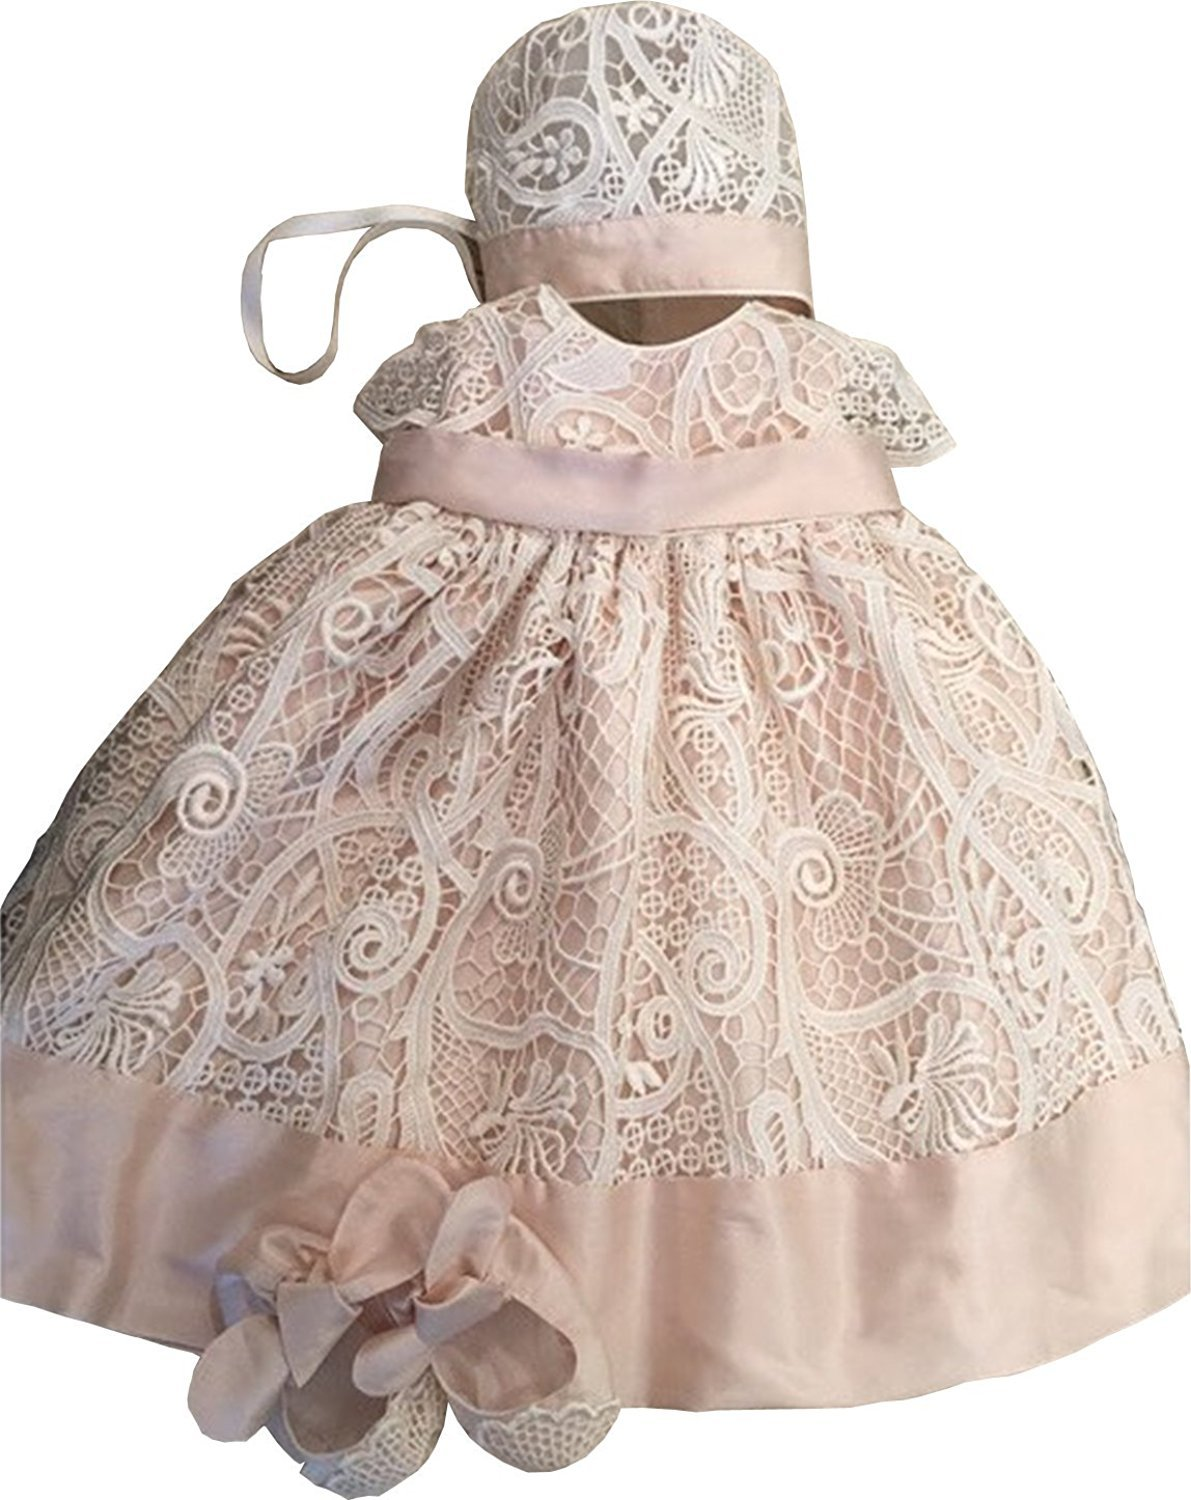 Banfvting Lace Baby-girls Champagne Ivory Pink Christening Dresses with Bonnet